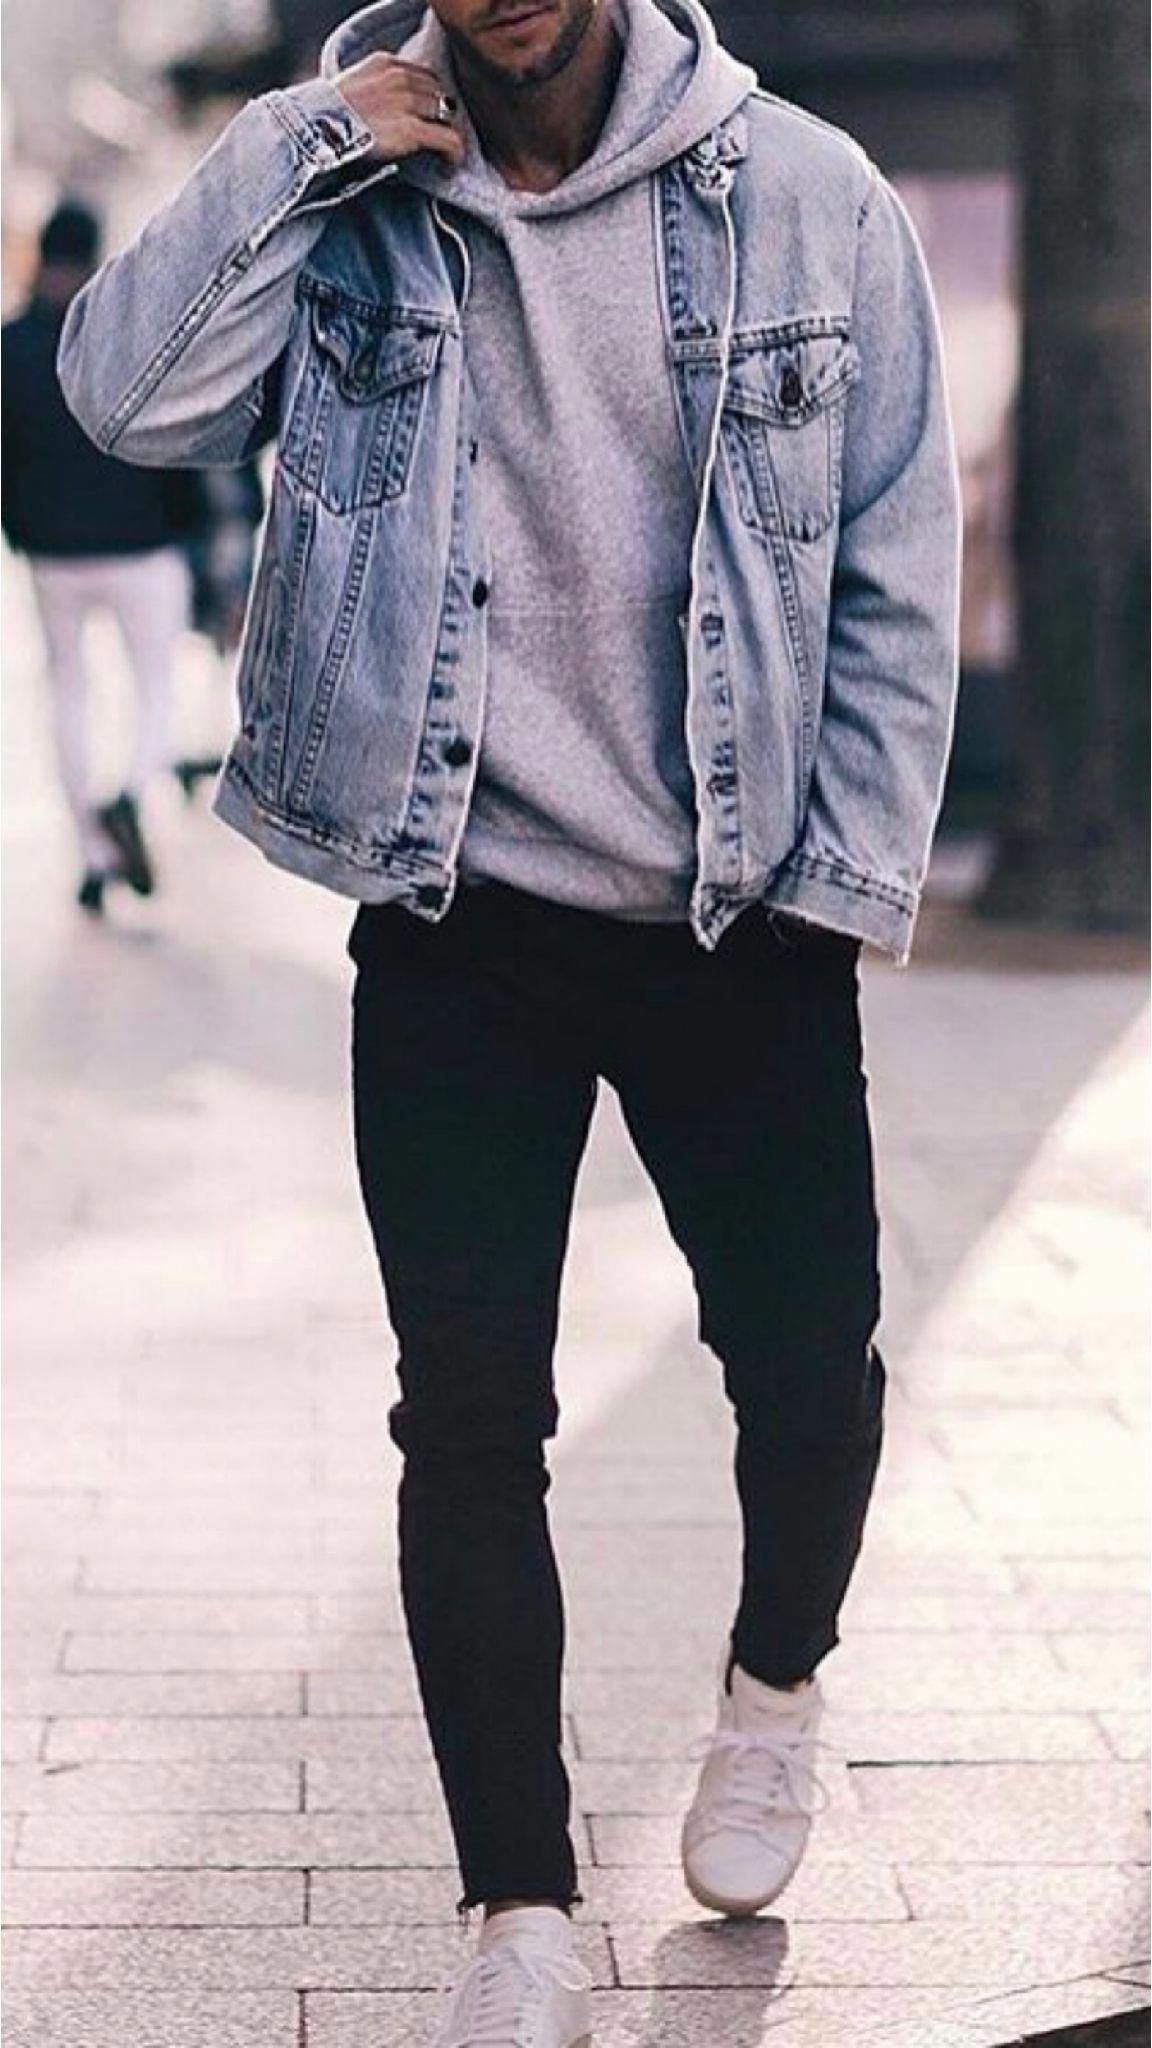 23 Jeans Jacket Outfits You Ll Love Mensfashionwinter Denim Outfit Men Winter Outfits Men Hoodie Outfit Men [ 2048 x 1152 Pixel ]